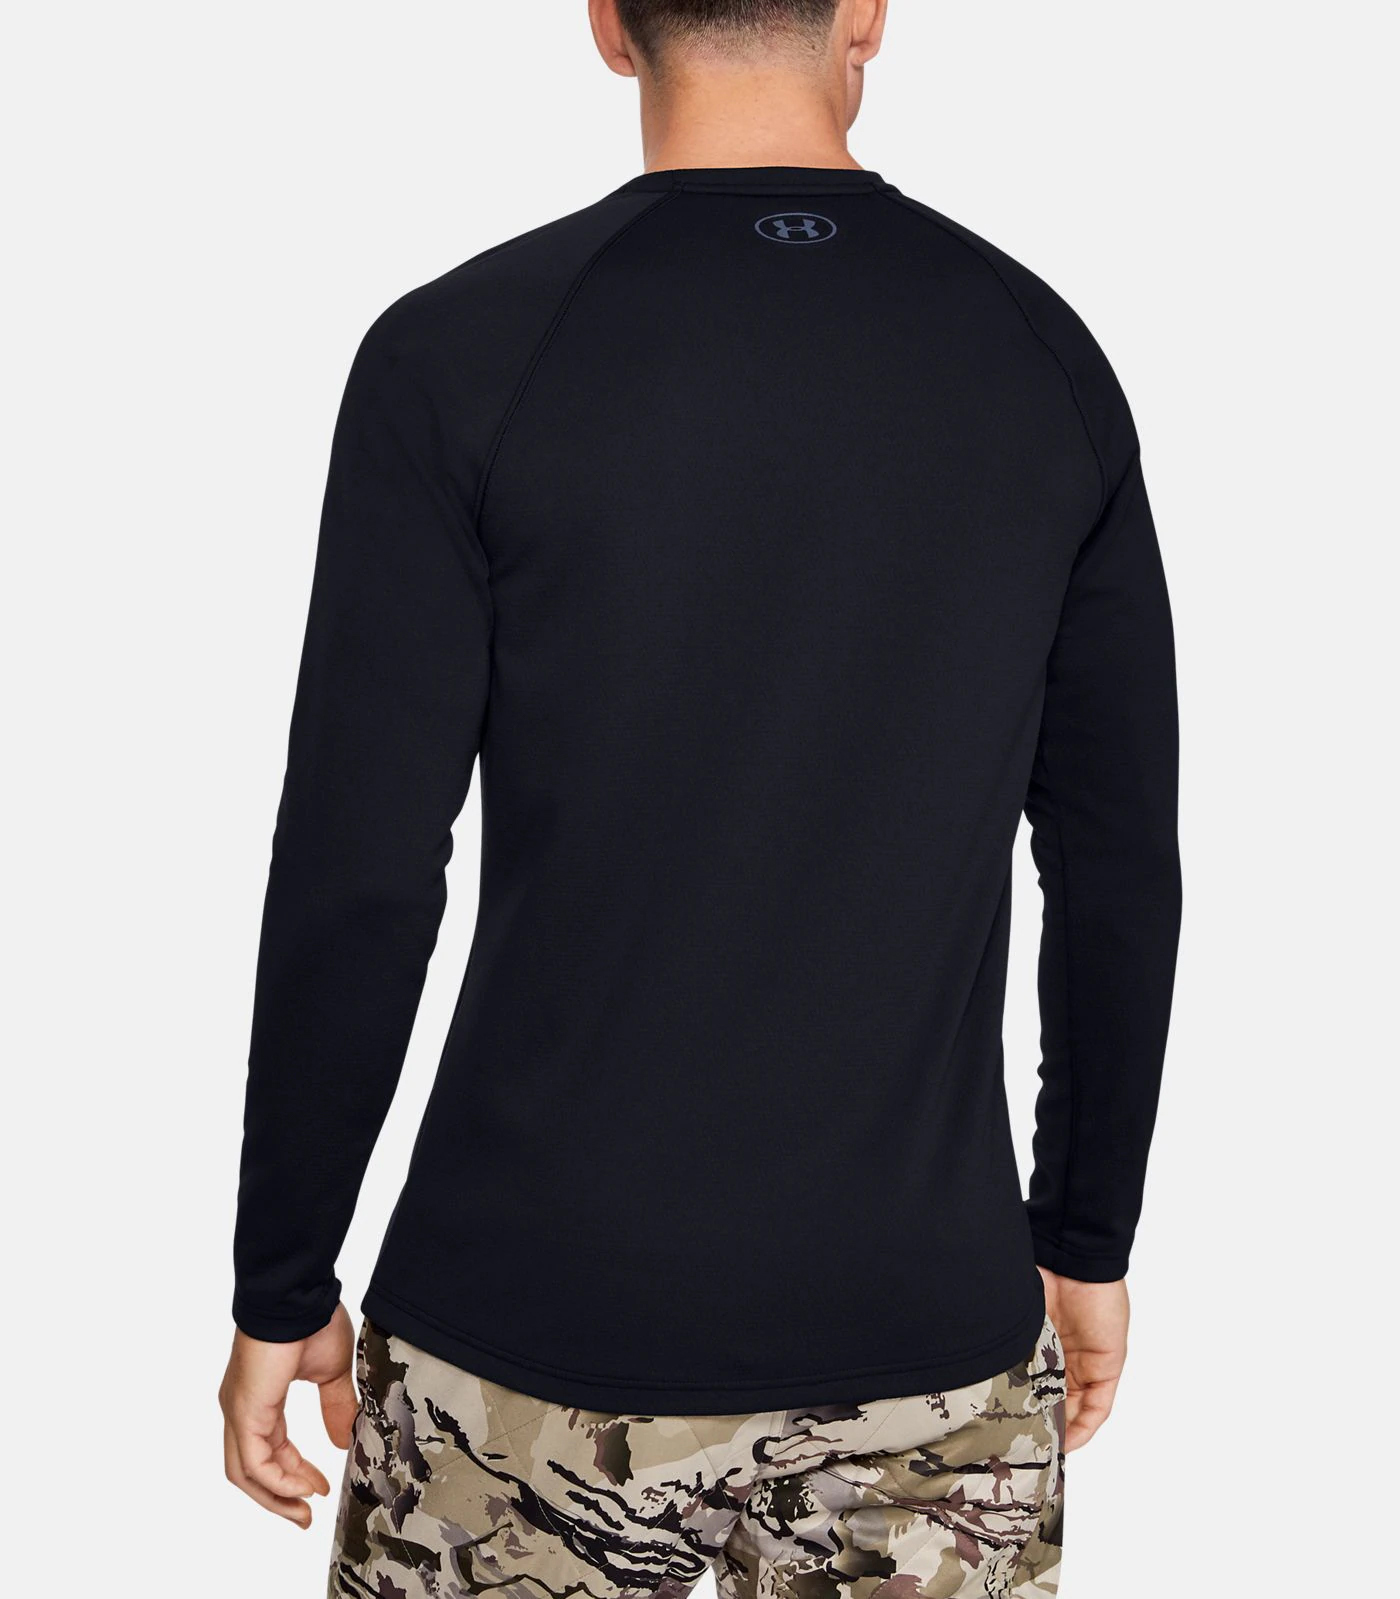 MENS_BASE-LAYERS-4_LS_UAR1353349001_08